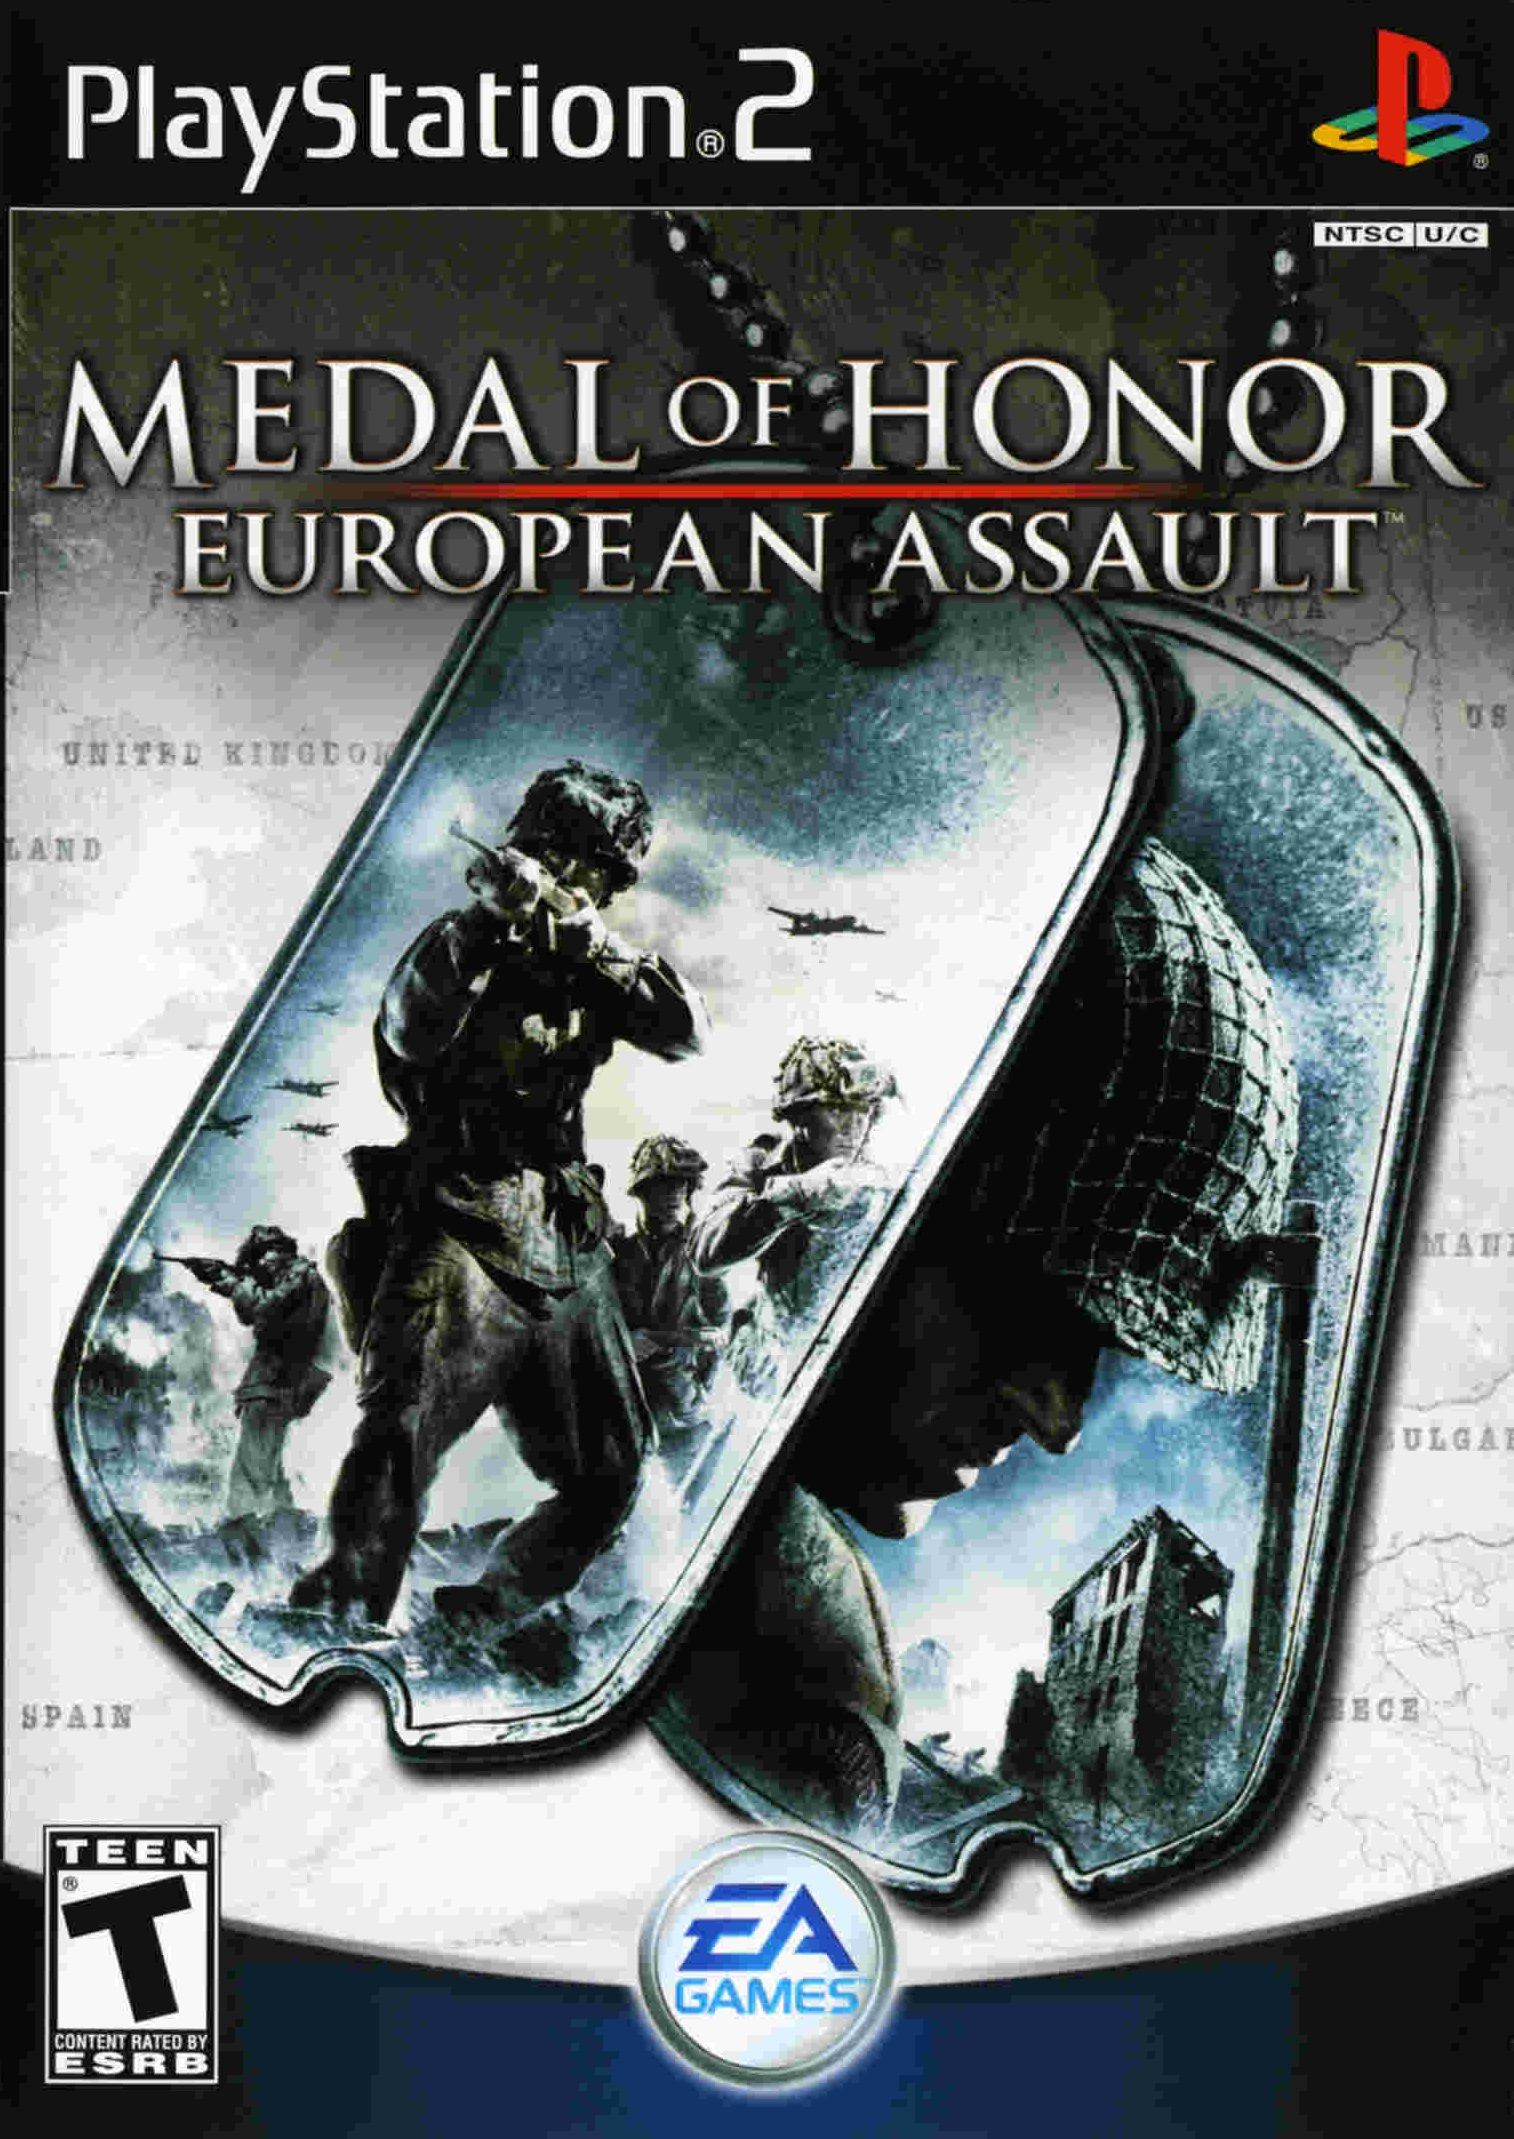 Medal Of Honor European Assault Ps2 Medal Of Honor Gamecube Games Ps2 Games